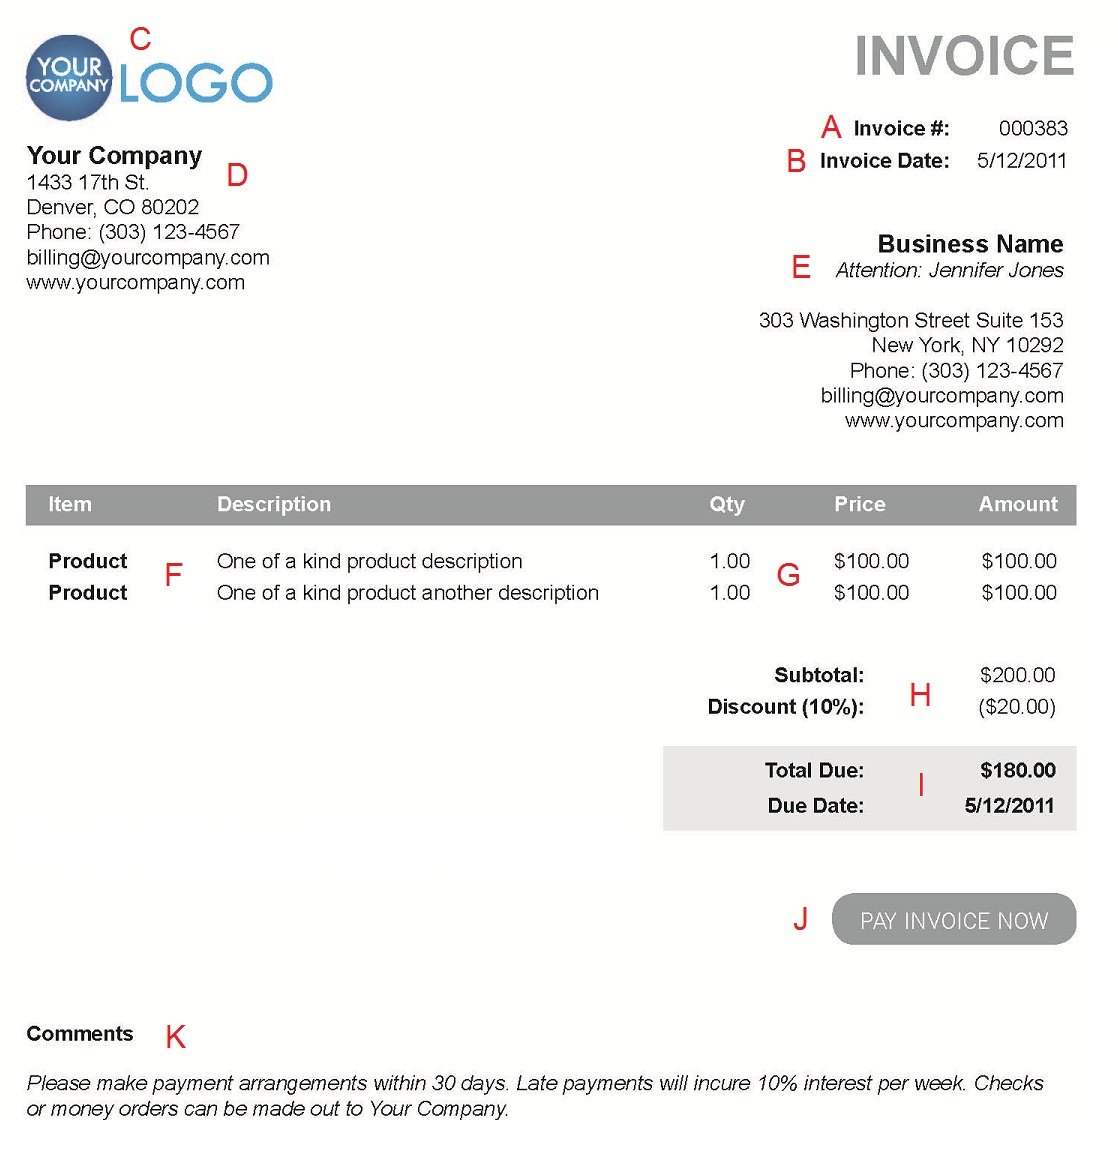 Centralasianshepherdus  Prepossessing The  Different Sections Of An Electronic Payment Invoice With Hot A  With Amusing Sending Invoice On Paypal Also Scan Invoices In Addition Honda Accord  Invoice Price And Medical Records Invoice As Well As My Invoices And Estimates Deluxe License Key Additionally Excel Template For Invoice From Paysimplecom With Centralasianshepherdus  Hot The  Different Sections Of An Electronic Payment Invoice With Amusing A  And Prepossessing Sending Invoice On Paypal Also Scan Invoices In Addition Honda Accord  Invoice Price From Paysimplecom